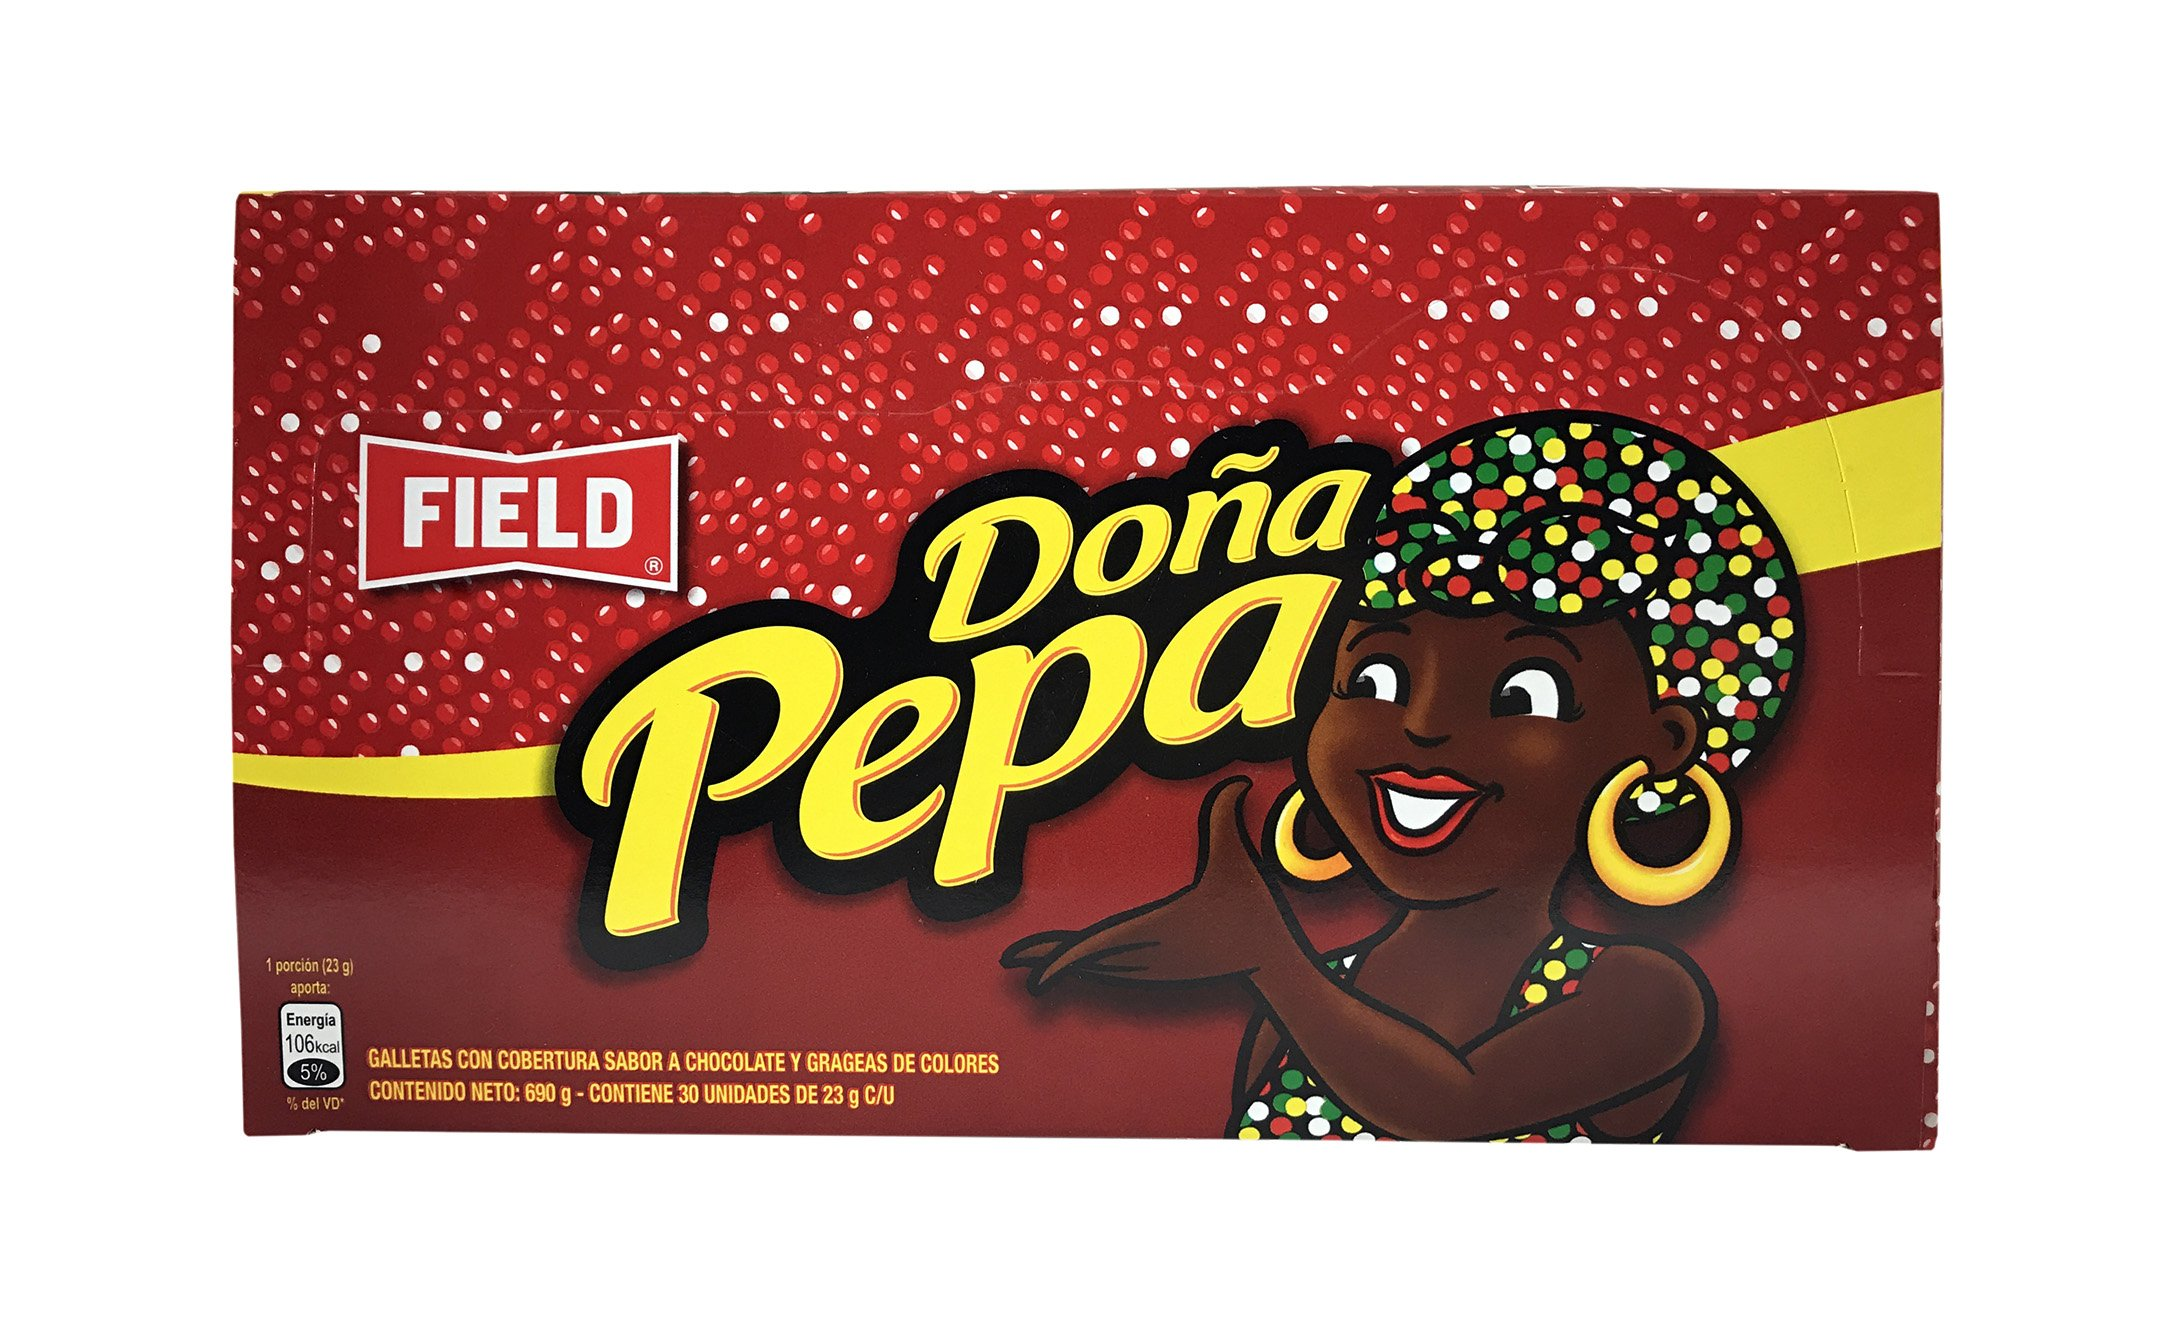 Amazon.com : Field Galleta Con Chocolate Dona Pepa - Peruvian Cookies - 3O Pieces per Pack : Candy And Chocolate Multipack Bars : Grocery & Gourmet Food